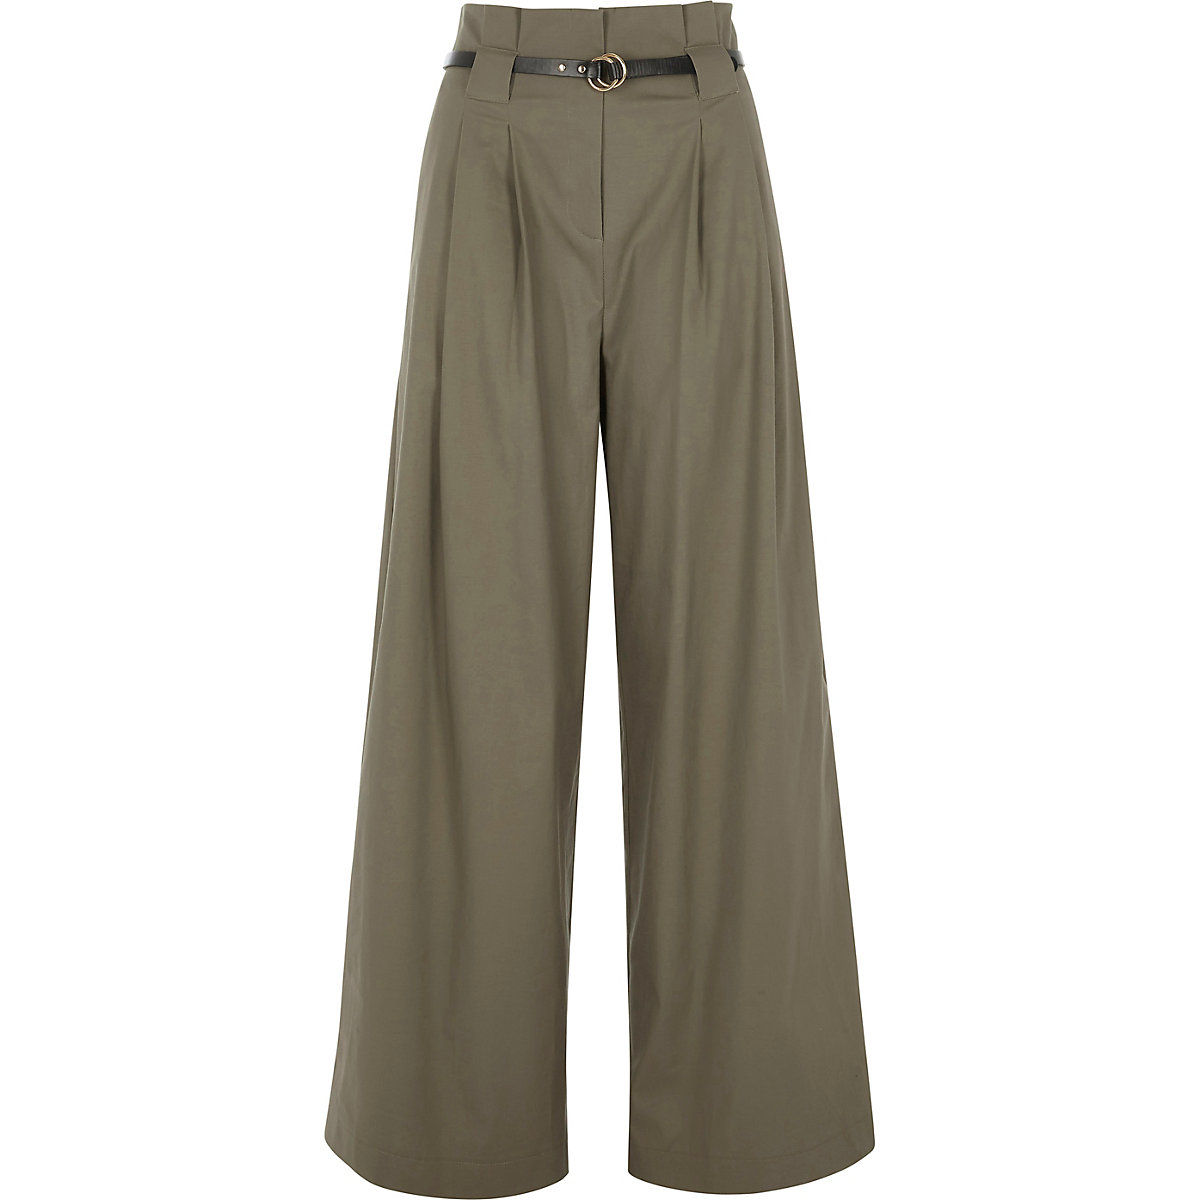 dc6bc944c9 Khaki high waisted belted wide leg trousers - Wide Leg Trousers - Trousers  - women